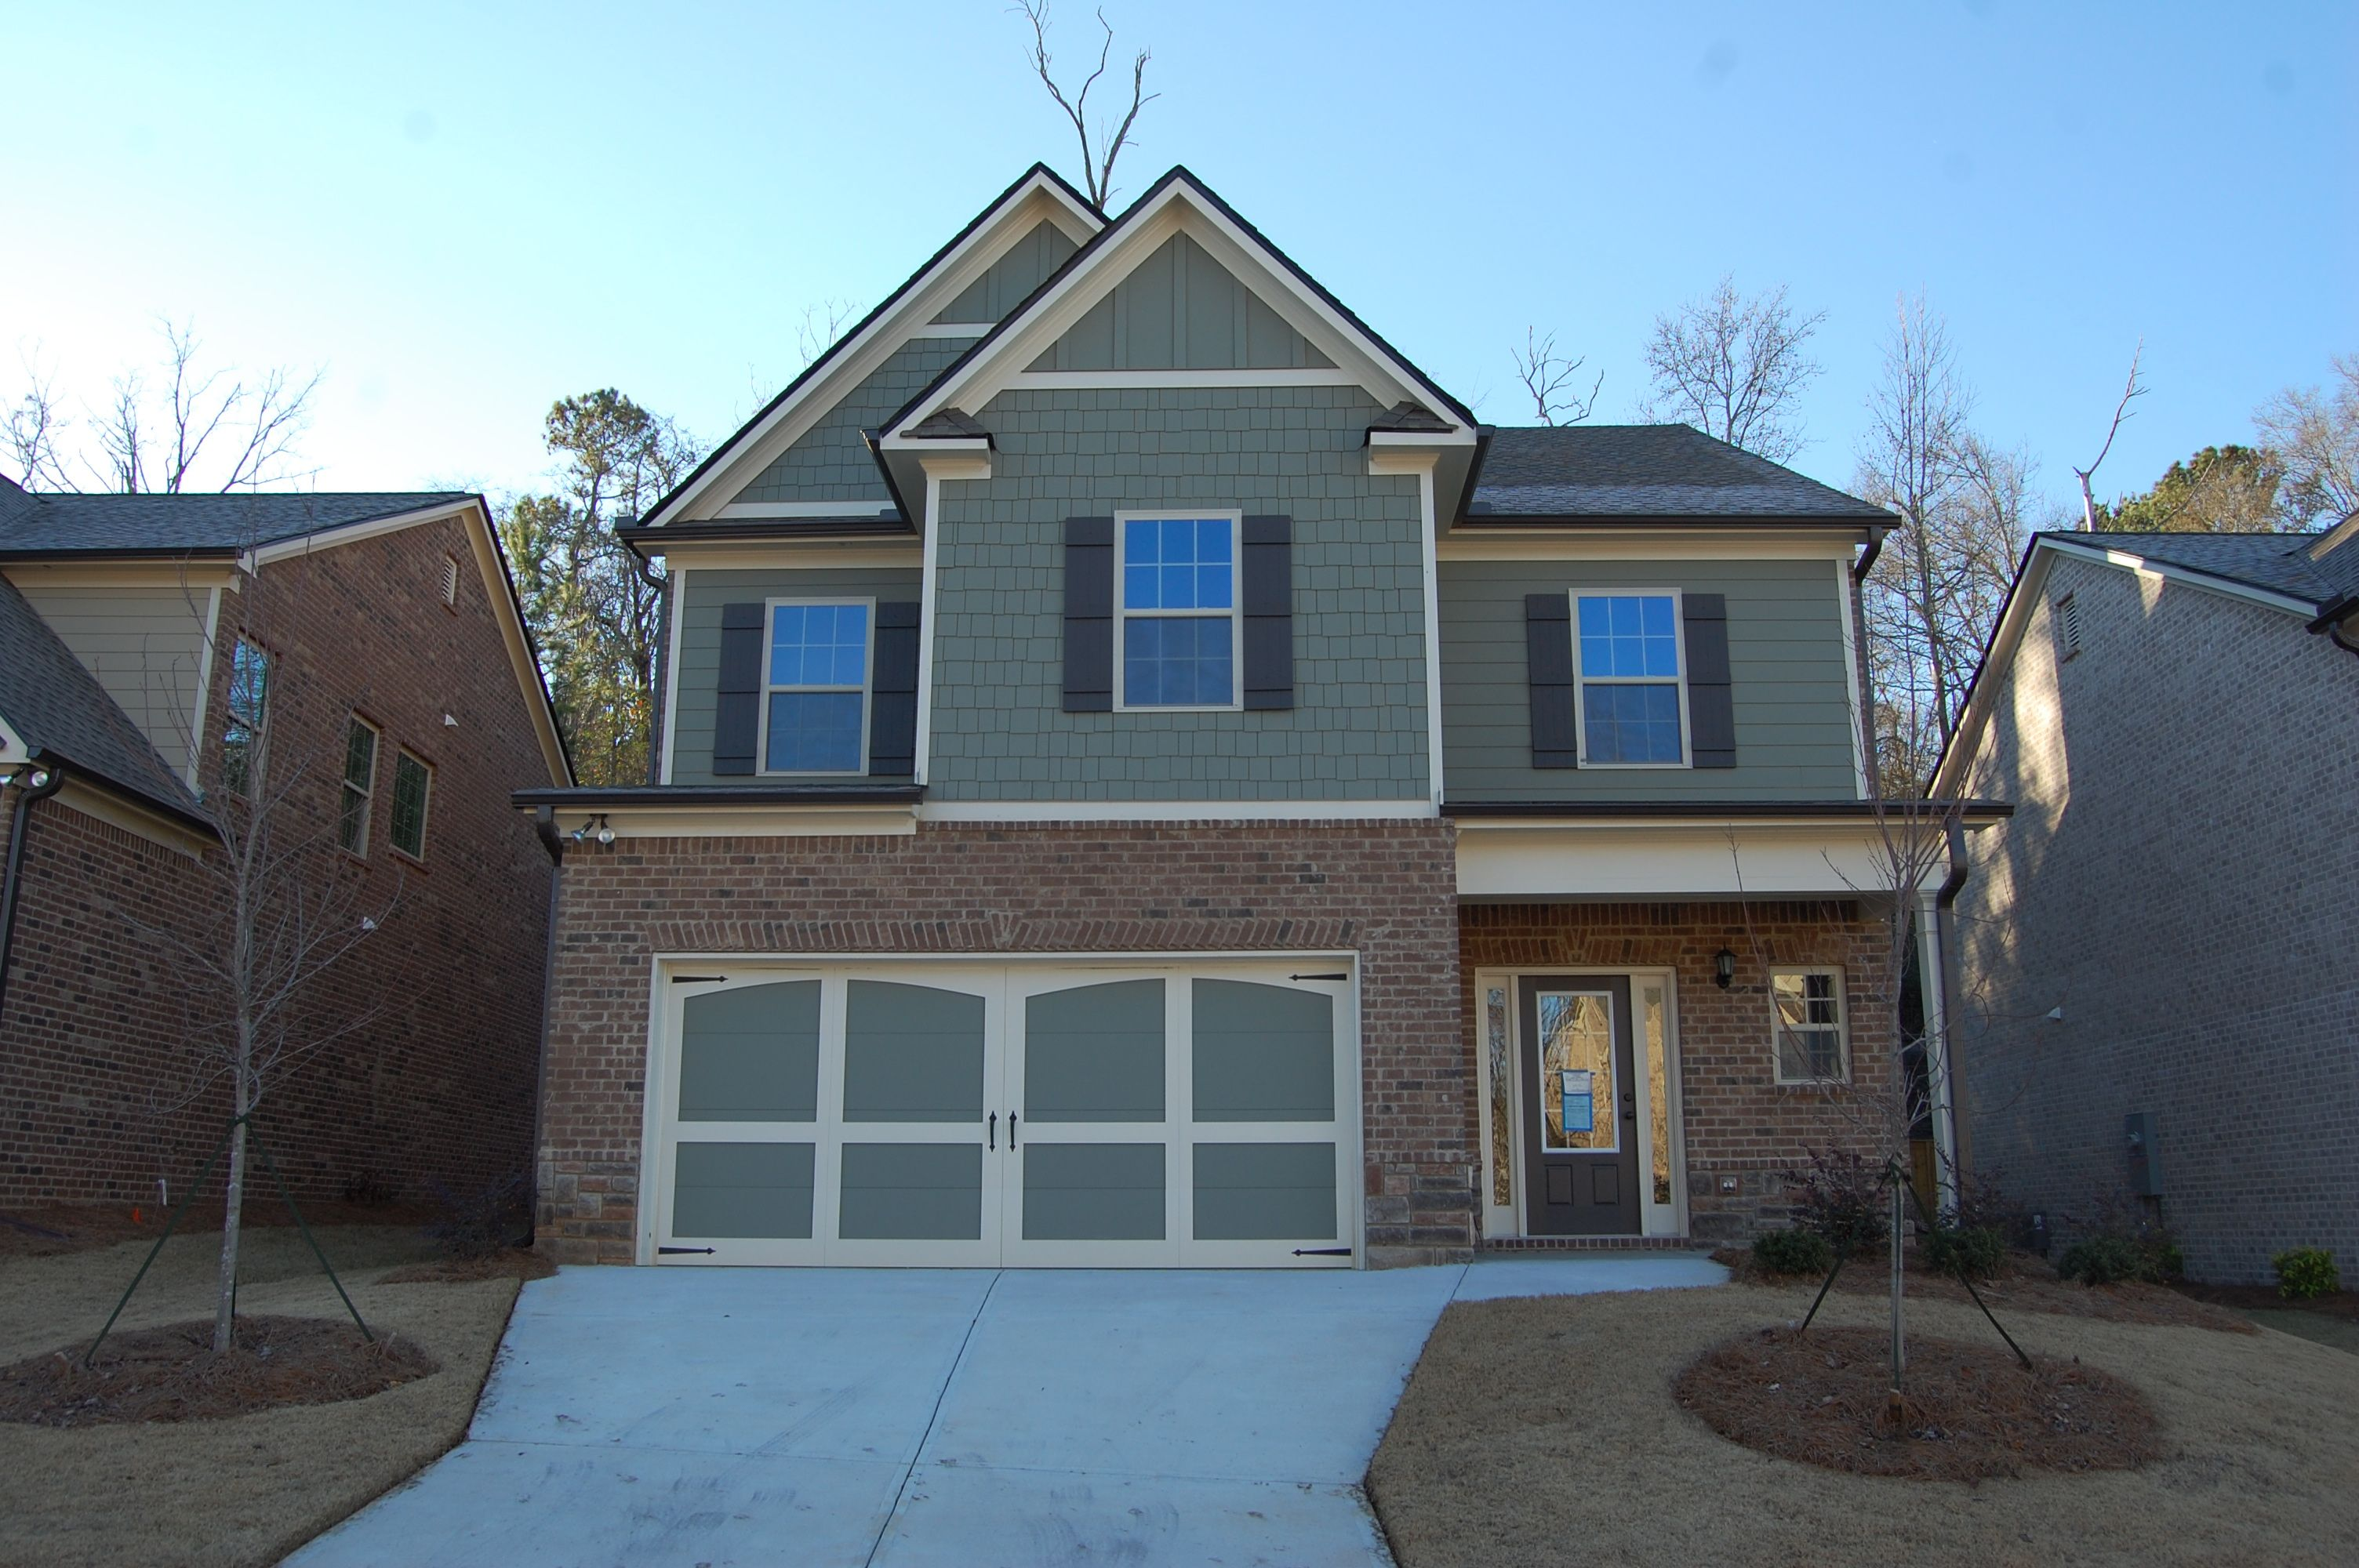 Reliant home for sale in athens ga home for sale in